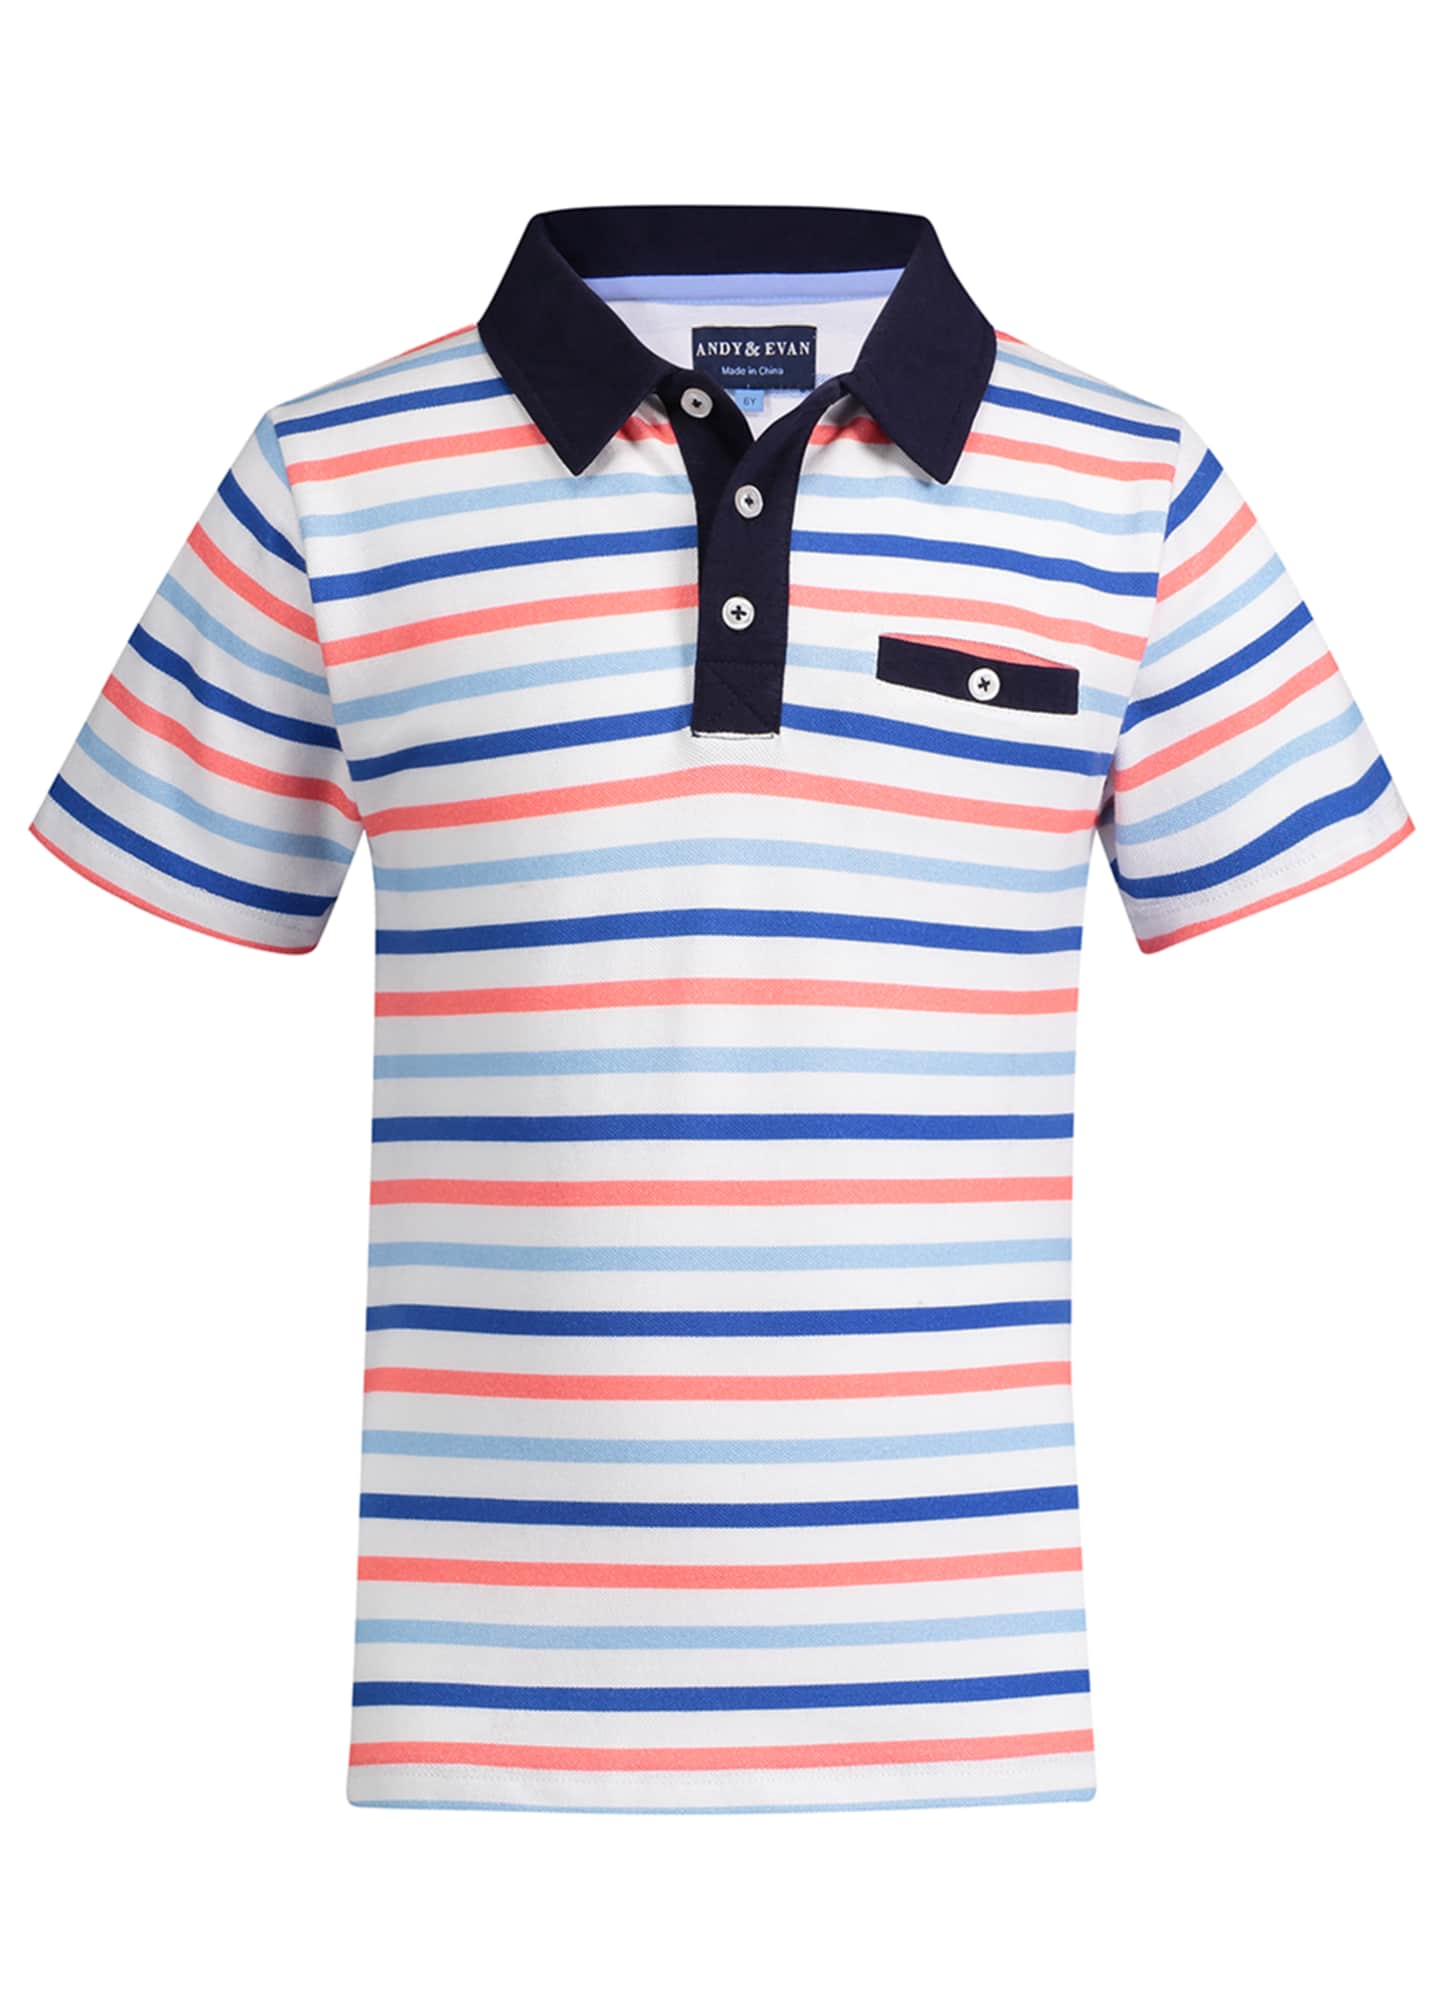 Andy & Evan Multicolored Stripe Polo Shirt, Size